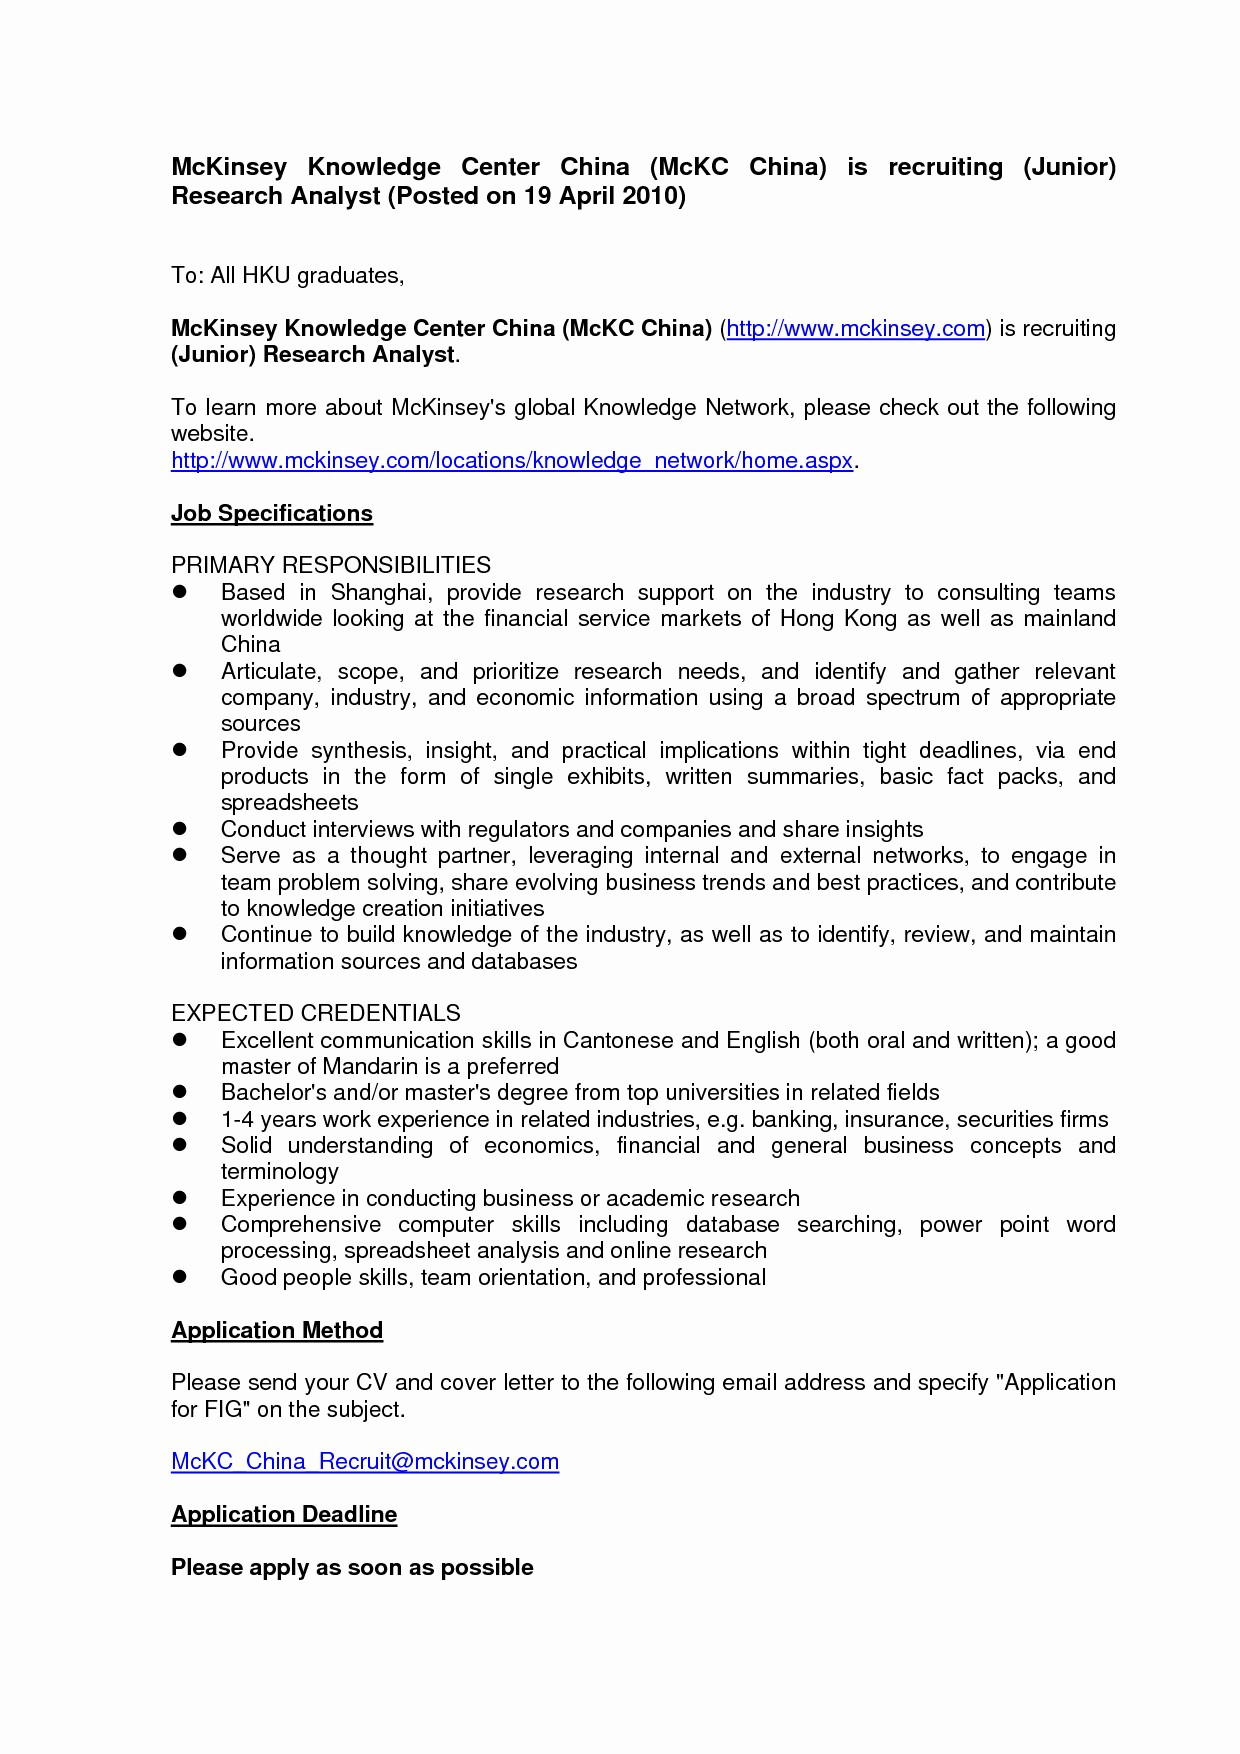 Letter Of Intent Template Word - Biz Apps Co Page 2 Of 20 Jobs Letter Sample formats